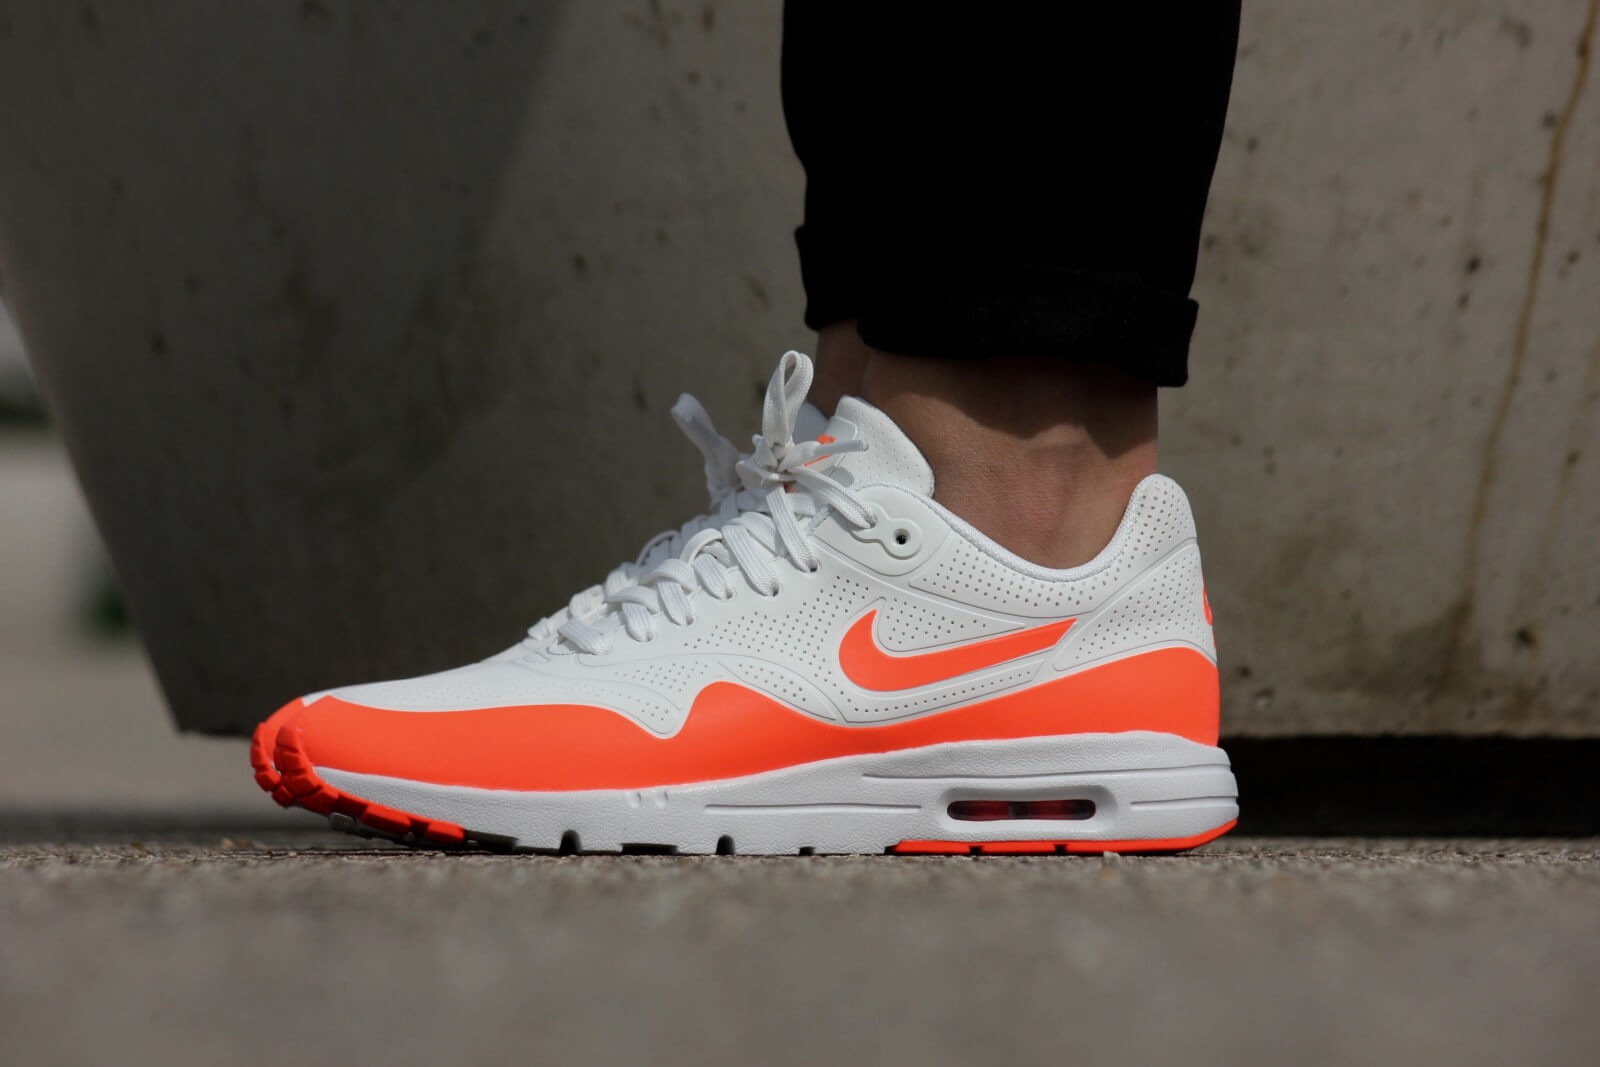 Nike WMNS Air Max 1 Ultra Moire Summit White/ Total Crimson